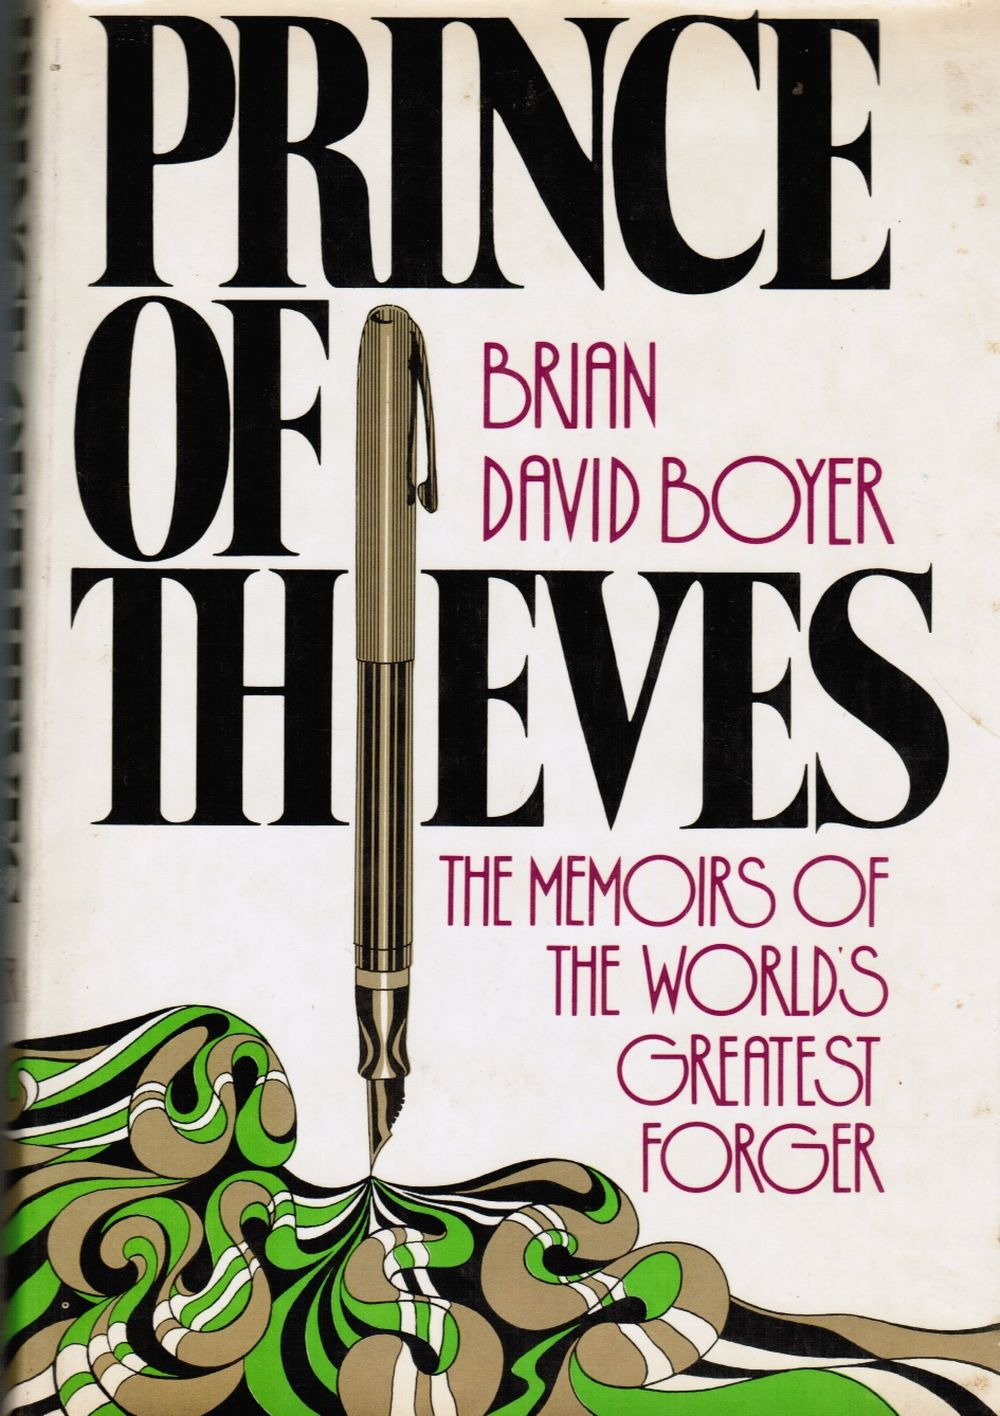 Image for Prince of Thieves: the Memoirs of the World's Greatest Forger